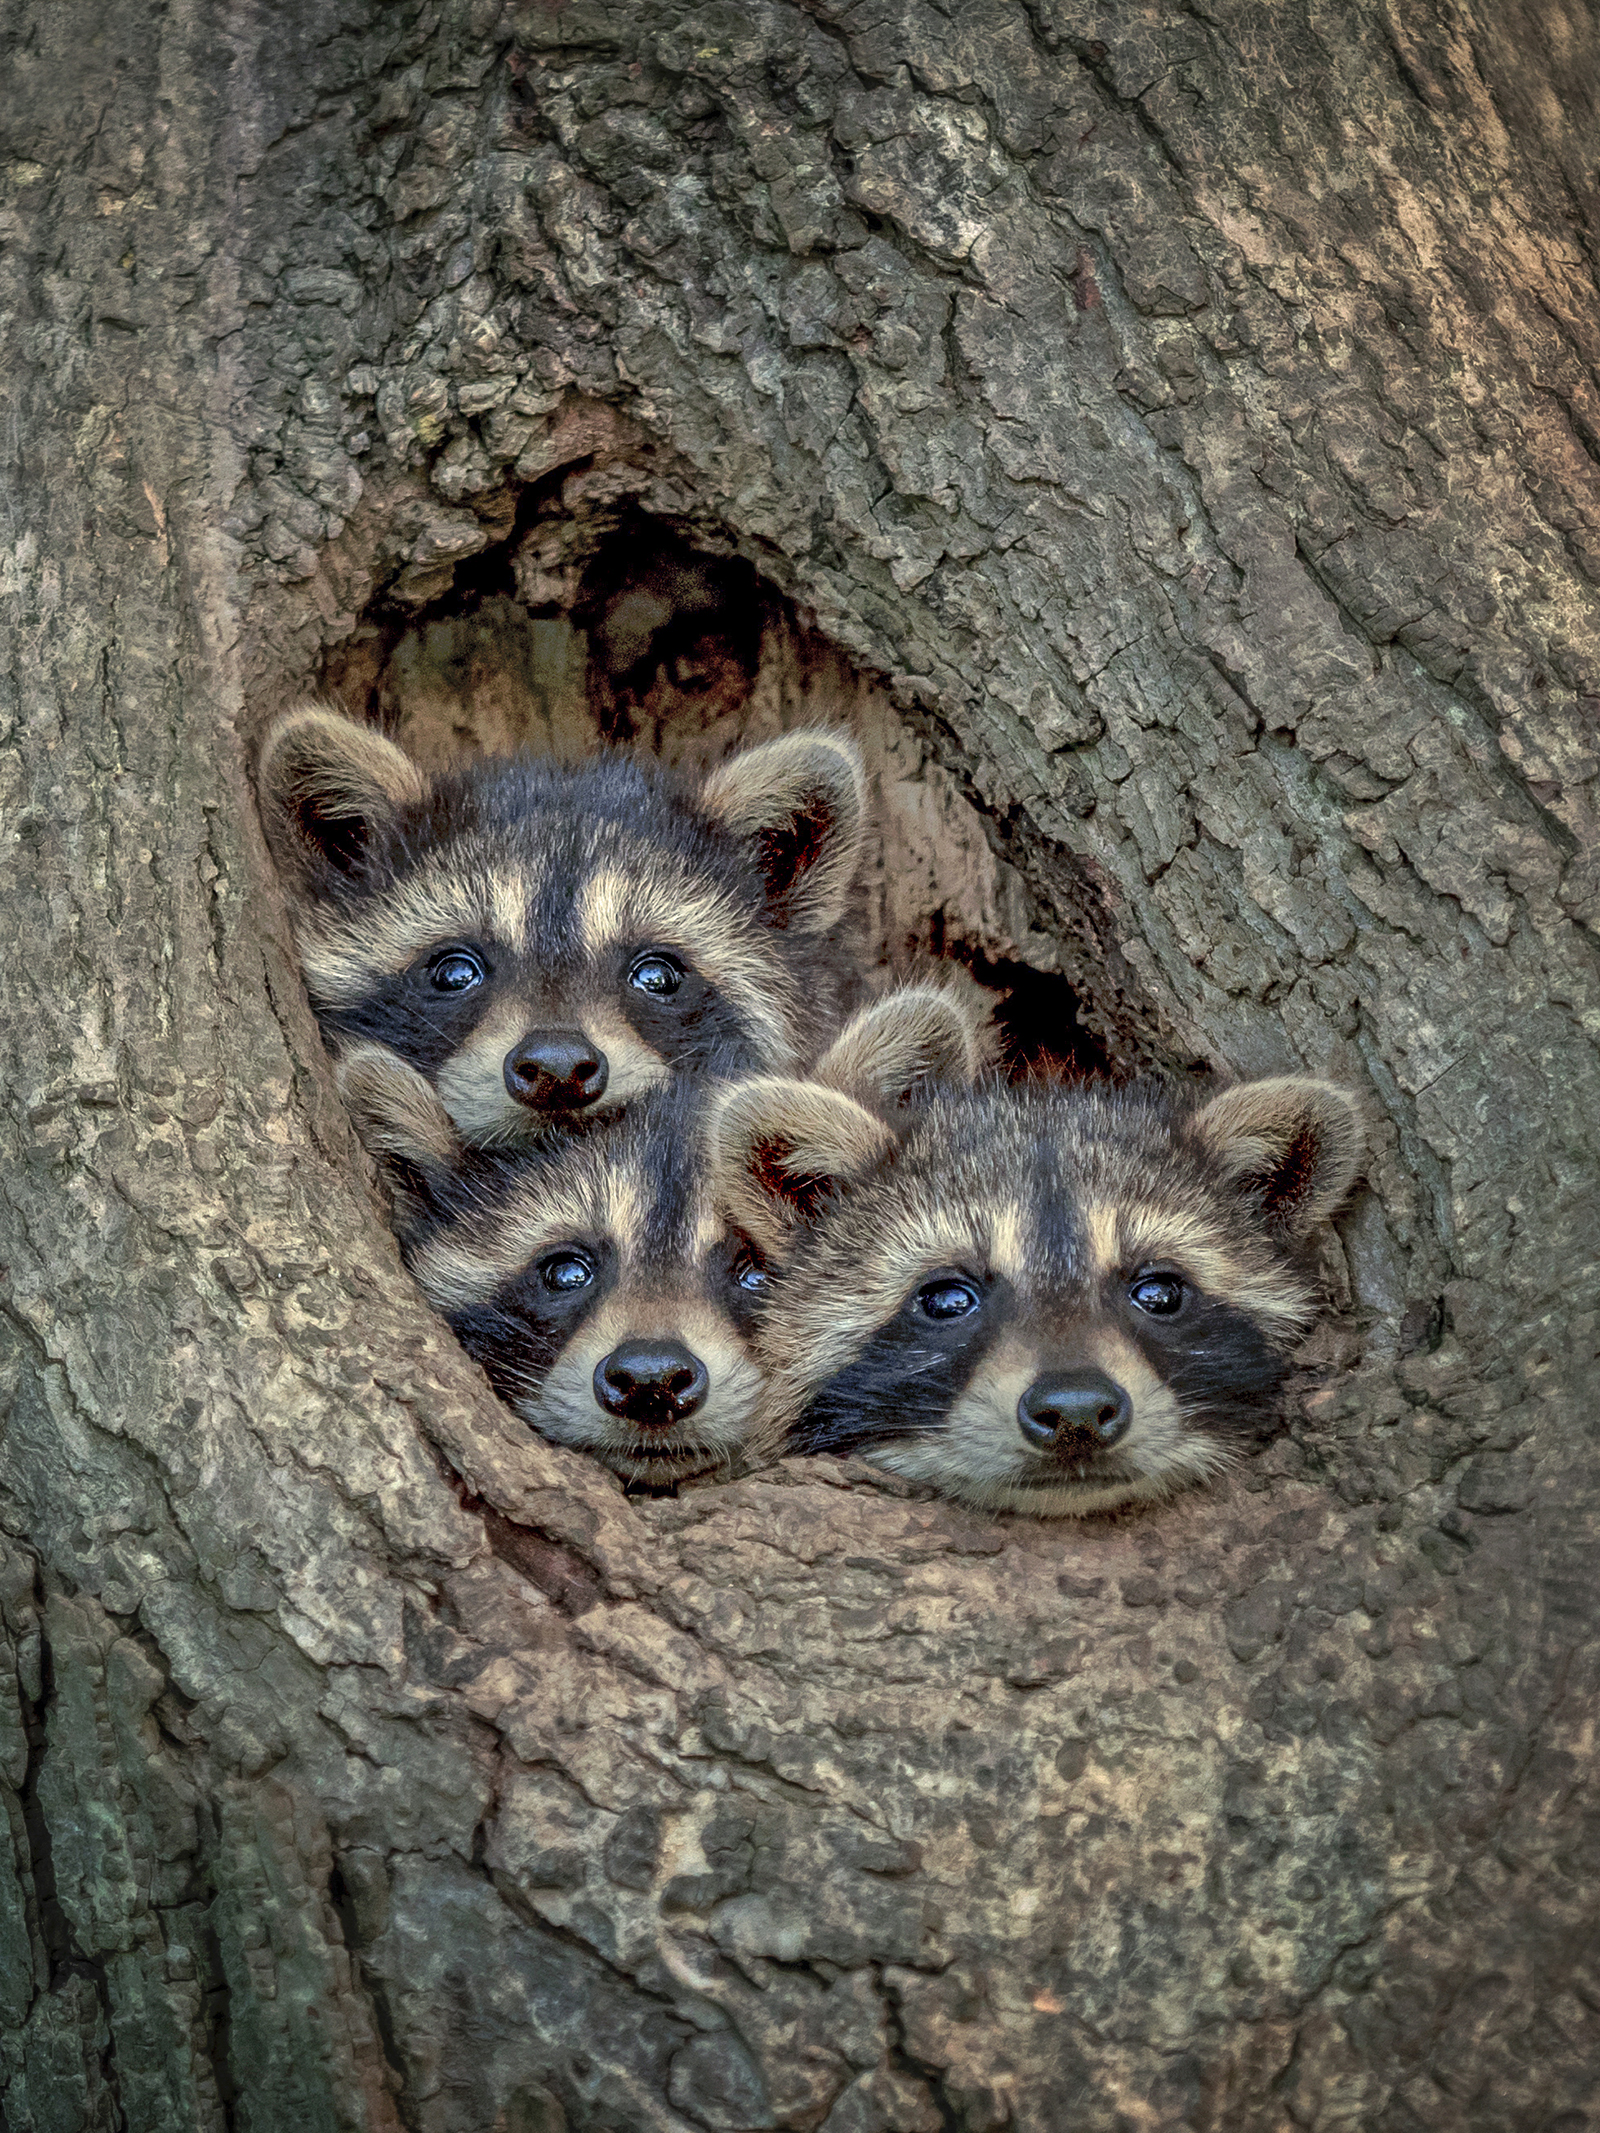 When you just can't wait your turn to look raccoons by Kevin Biskaborn